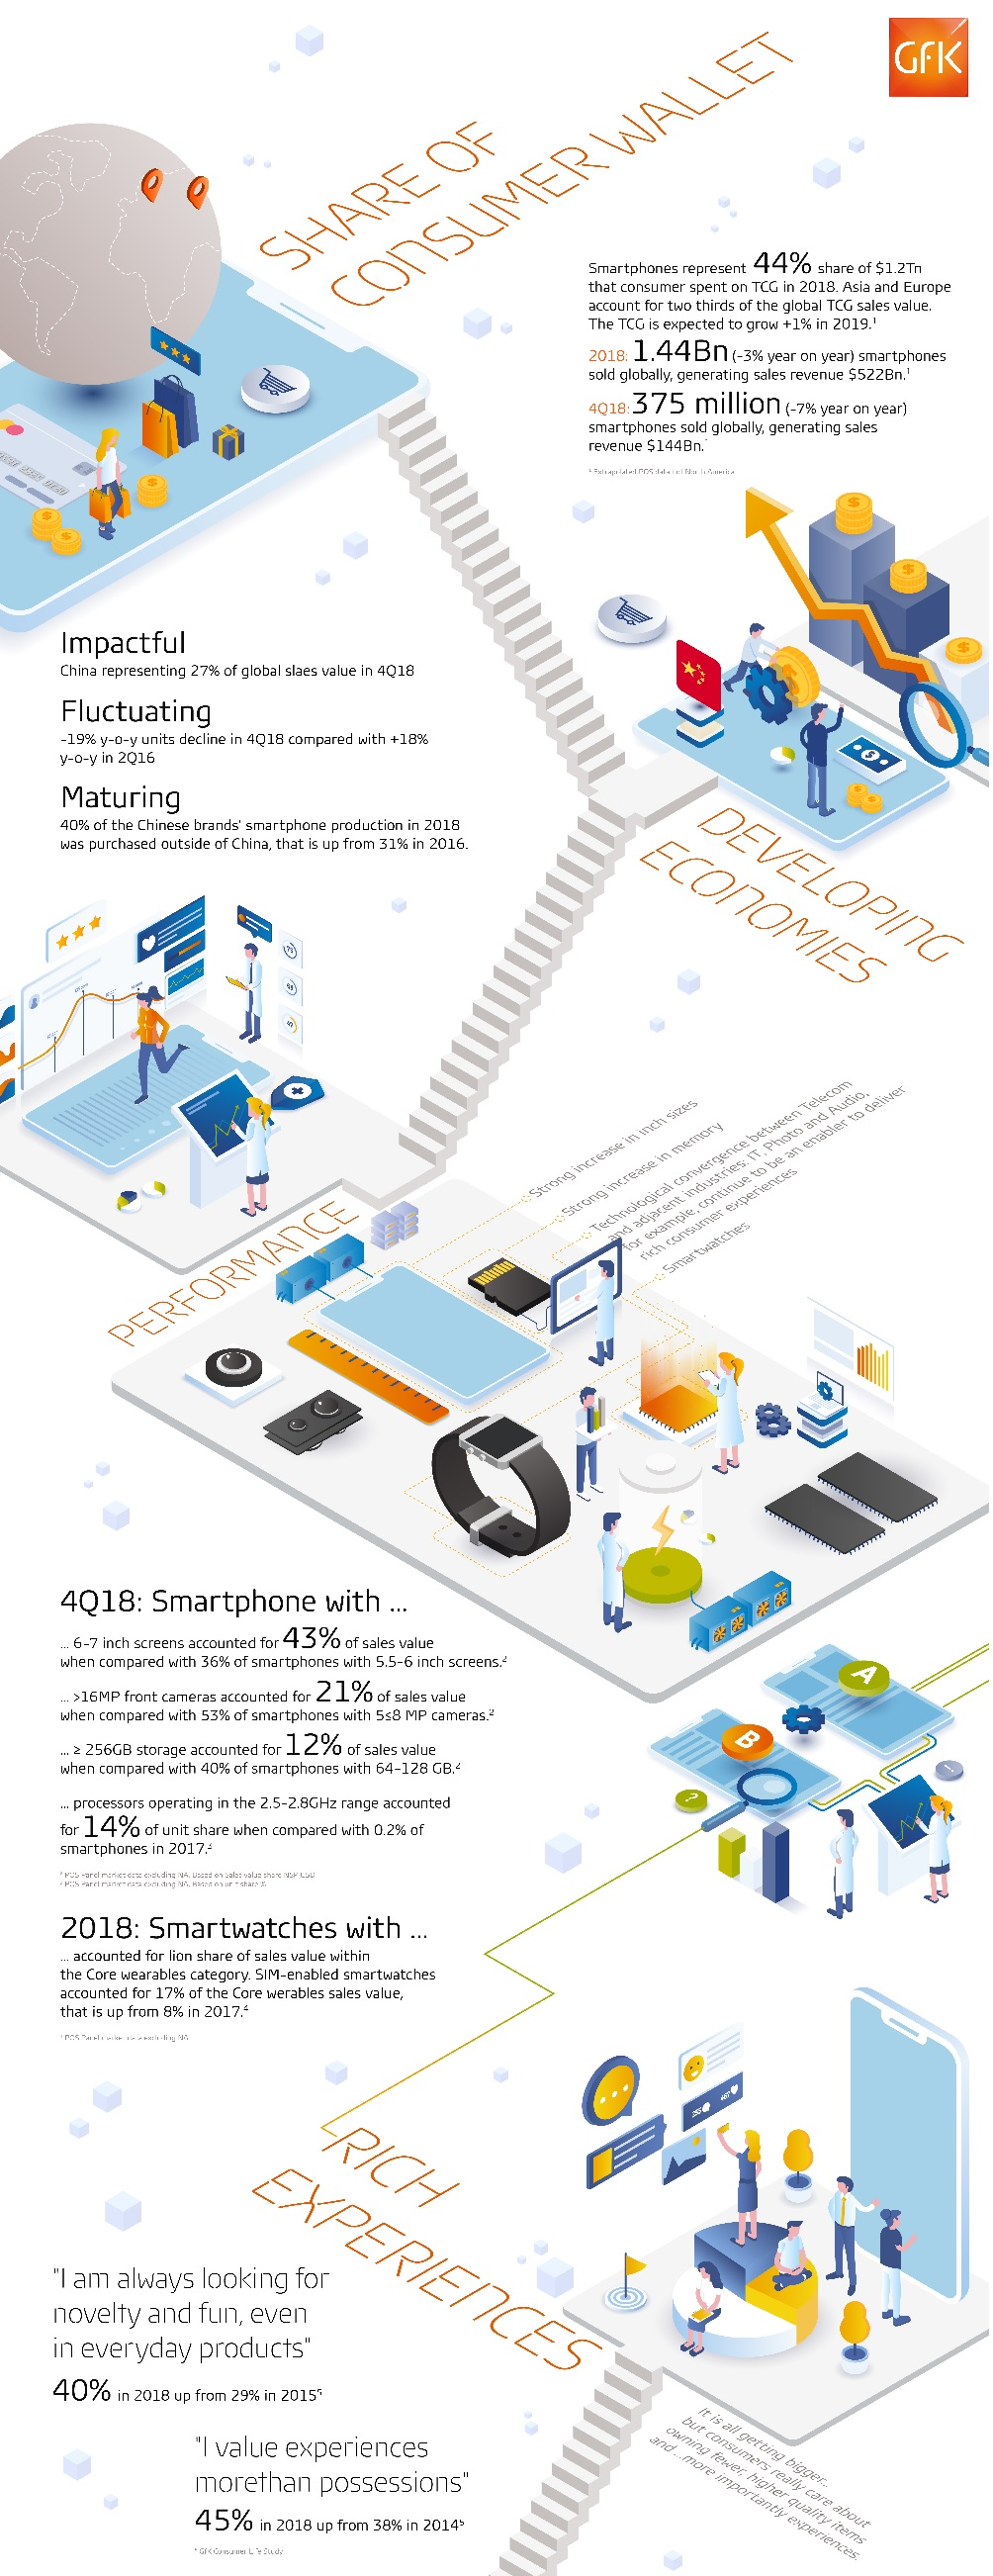 Gfk: Smartphones, mobile phones and wearables still the powerhouse